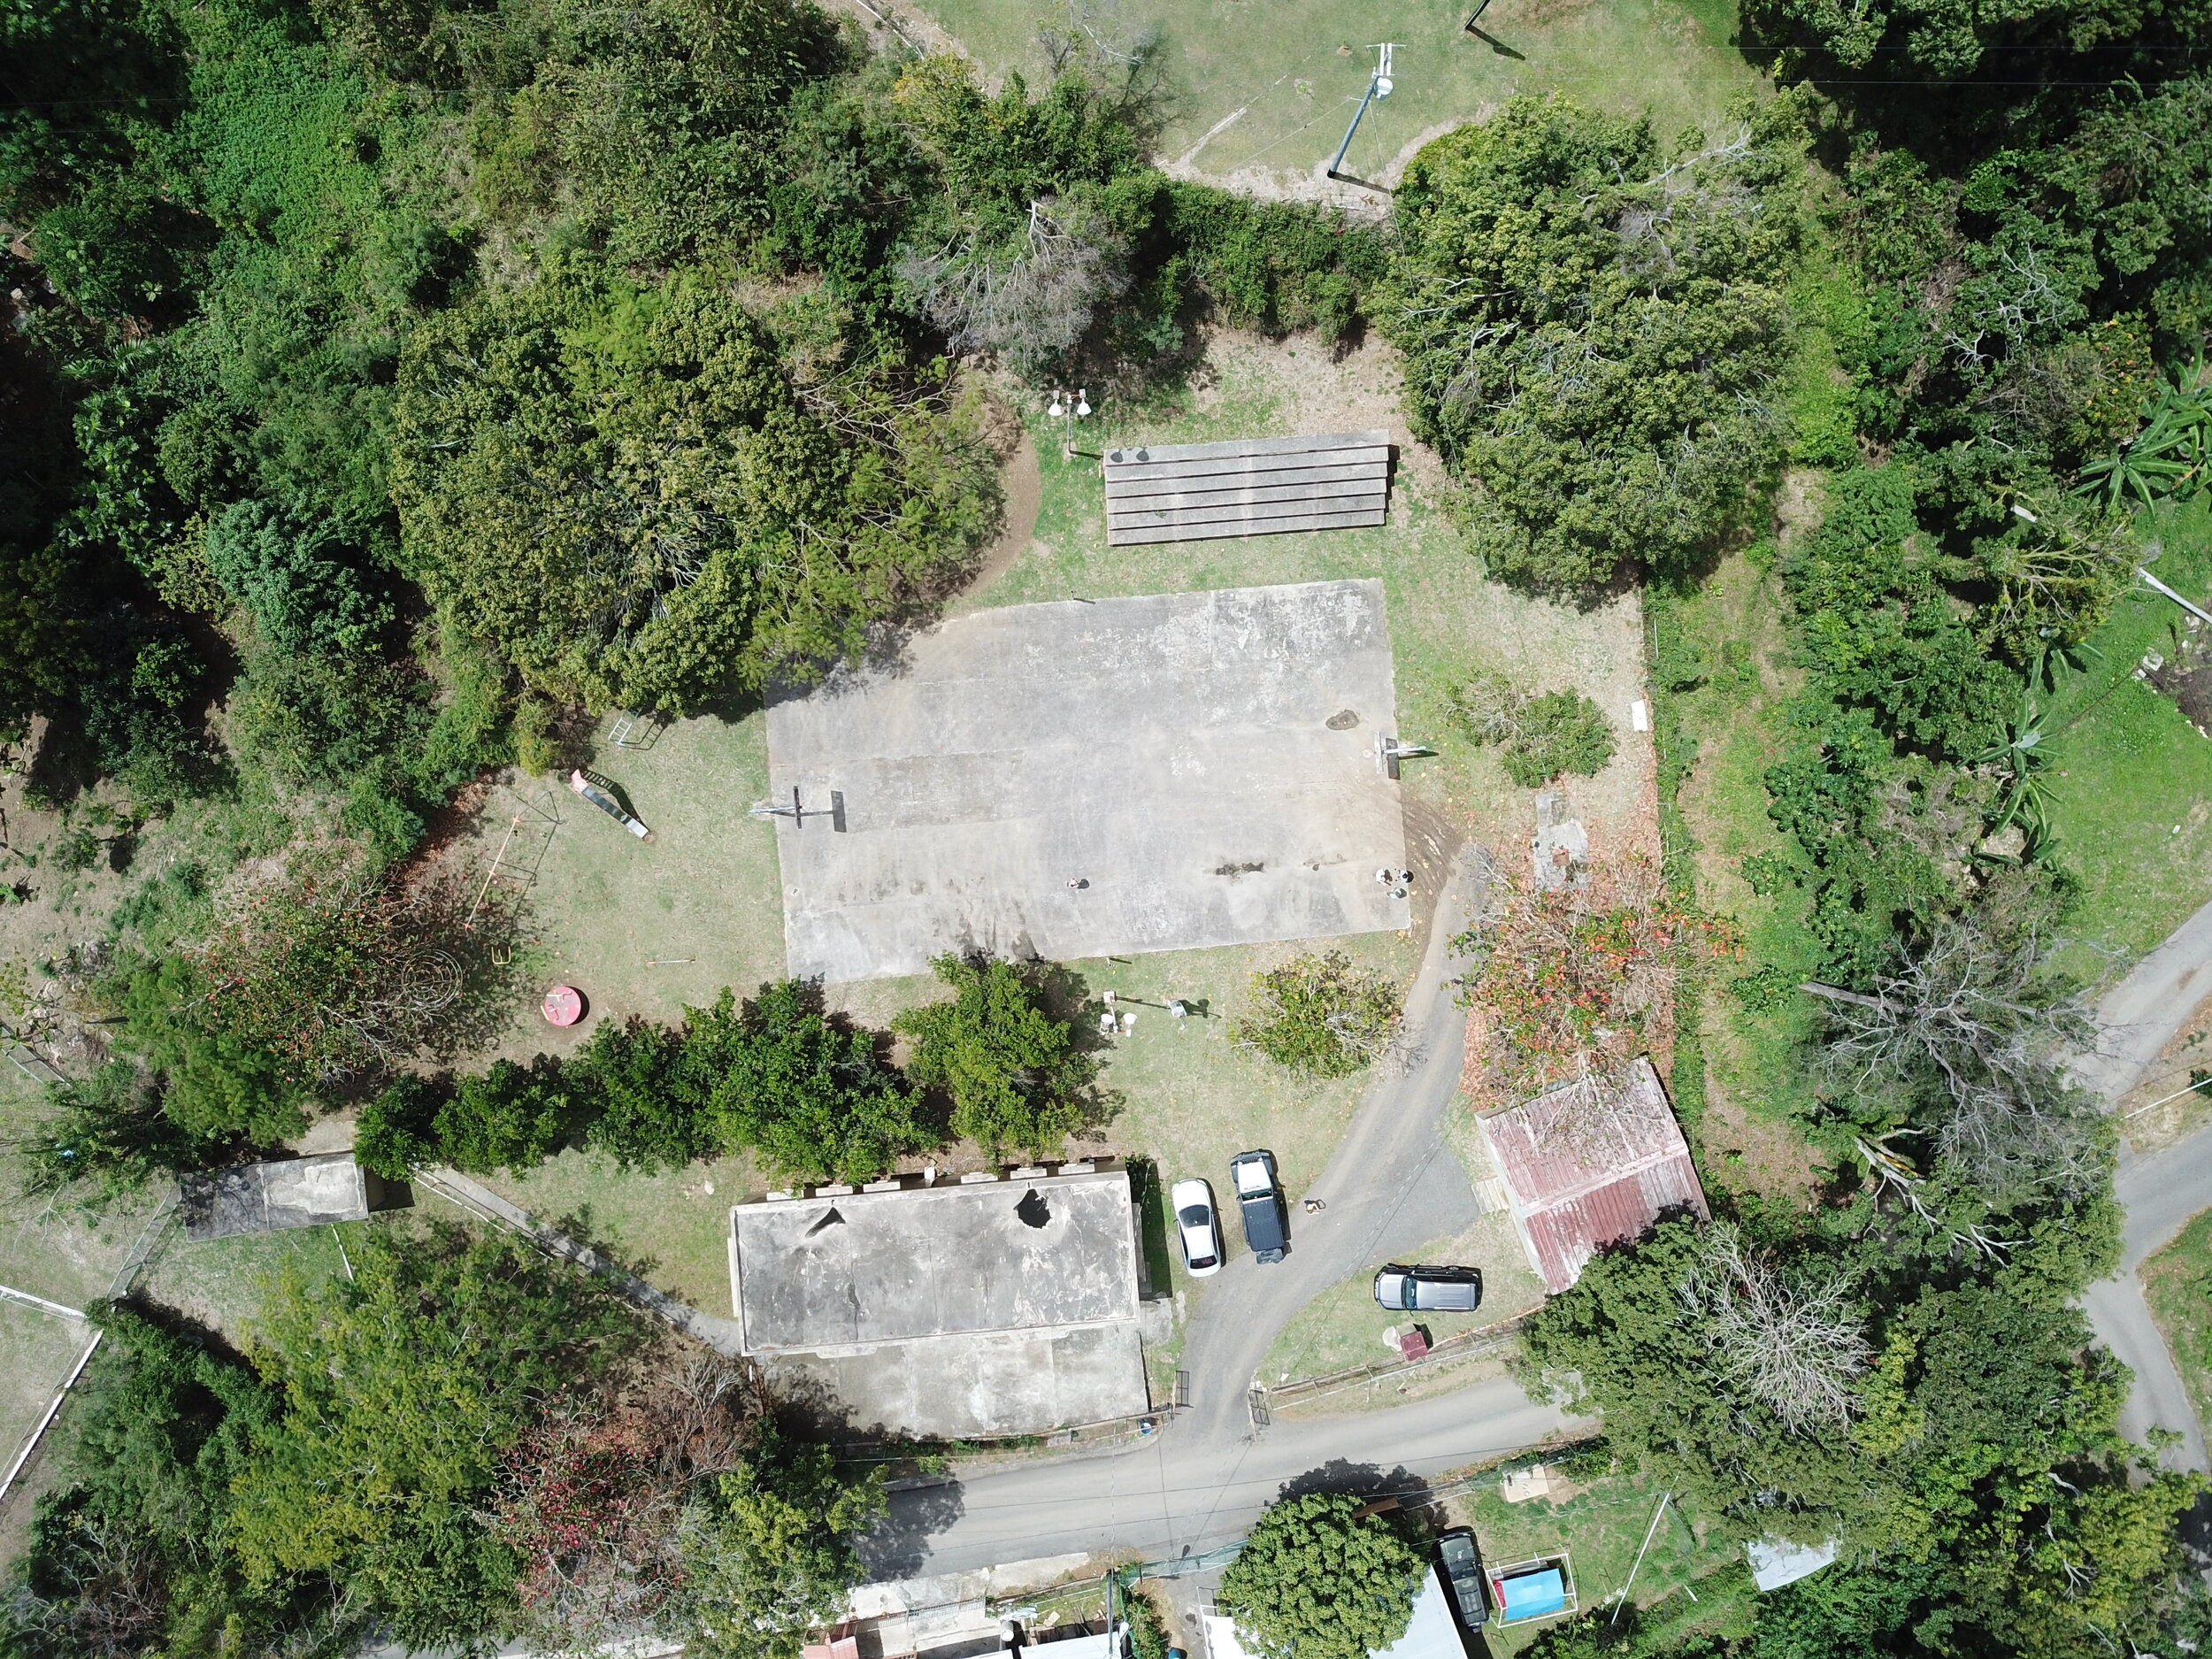 Our Mission - The CU Denver Undergraduate Design Build course series focuses on the relationship between service learning, international perspectives and architectural intervention. The students will design a functional community building and fundraise monies for materials for the village of Quebrada Ceiba, Puerto Rico . The building, with input from community leaders, will provide a site for The people in the somewhat mountain terrain have no easy access to a grocery store for produce and dry goods. The other part of their issue is that there is no public transportation to a town with access to a grocery store, also a majority of the citizens do not have a car or type of personal motorized transportation. Our goal is to refurbish and transform an existing community structure that is currently siting vacant and unused into a CoOp community store for the sale of groceries, dry goods, and any other products that would feasible to store and sell.Learn More